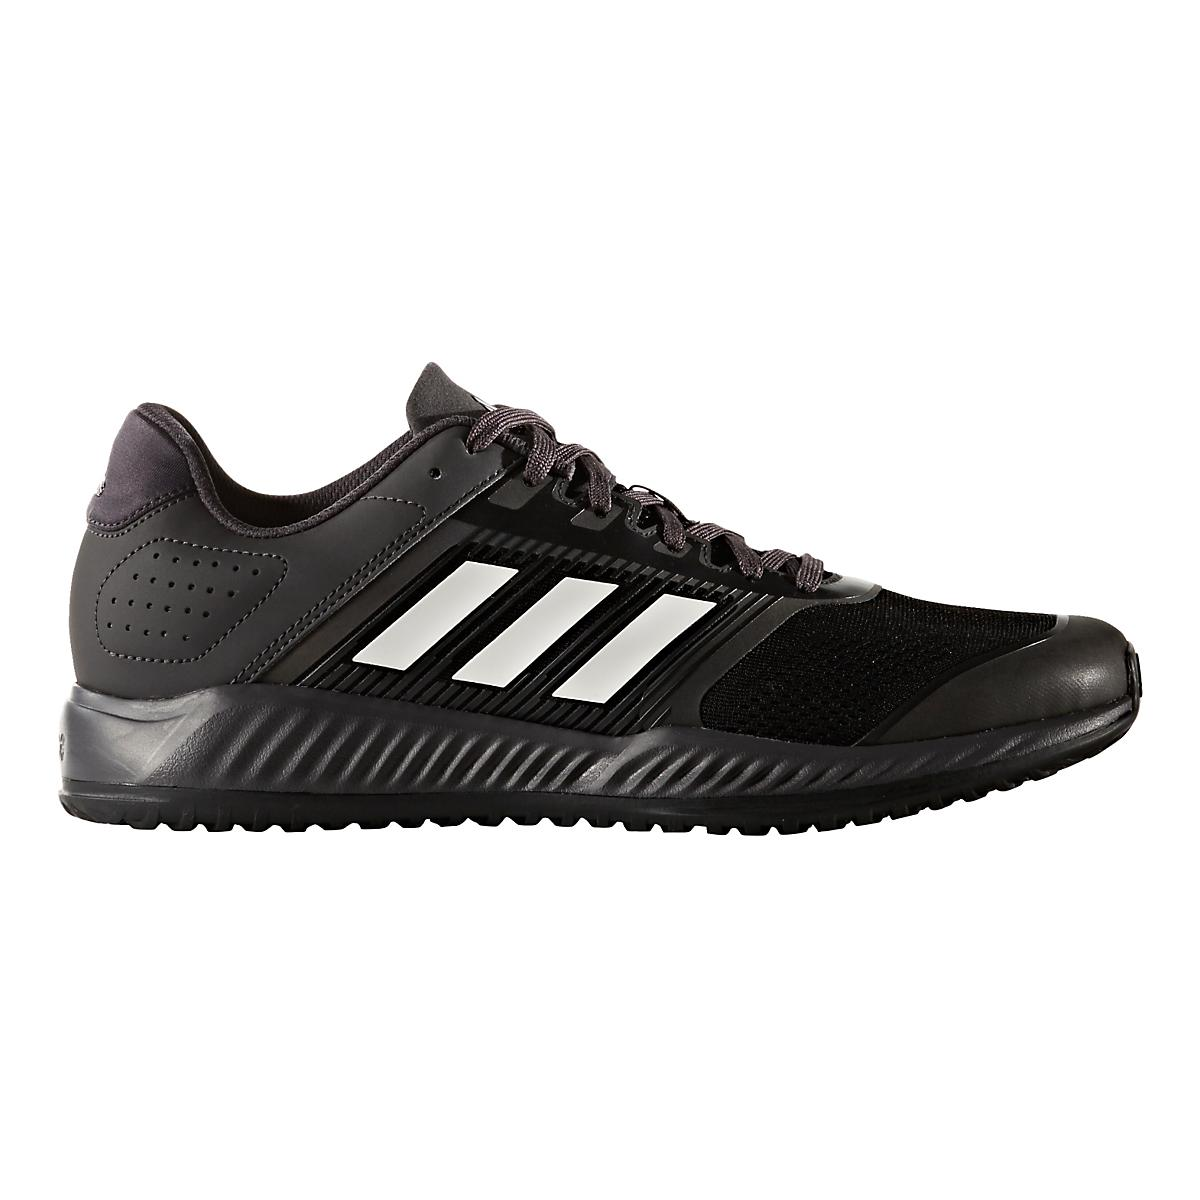 1cc2bf6b1 Mens adidas ZG Bounce Cross Training Shoe at Road Runner Sports